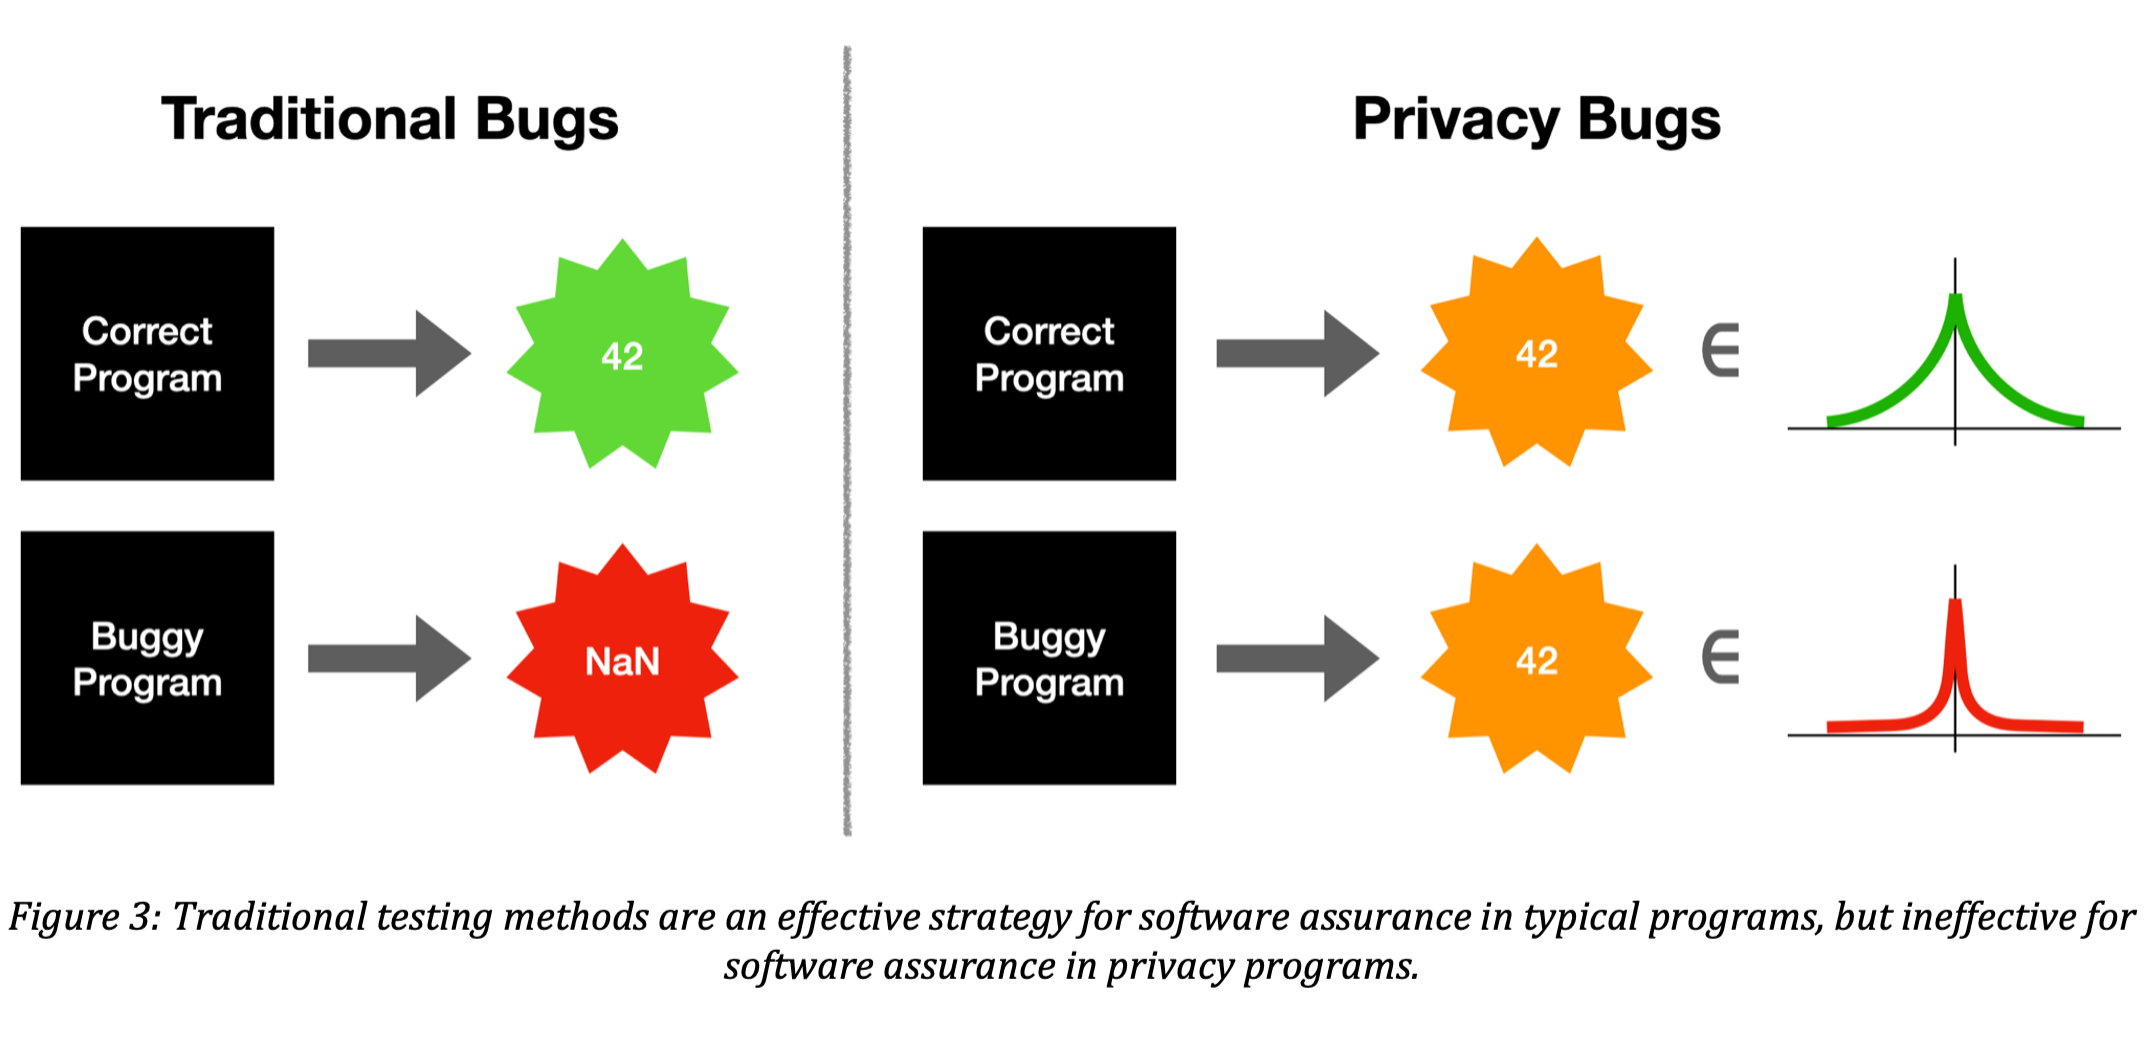 Figure 3: Traditional testing methods are an effective strategy for software assurance in typical programs, but ineffective for software assurance in privacy programs.